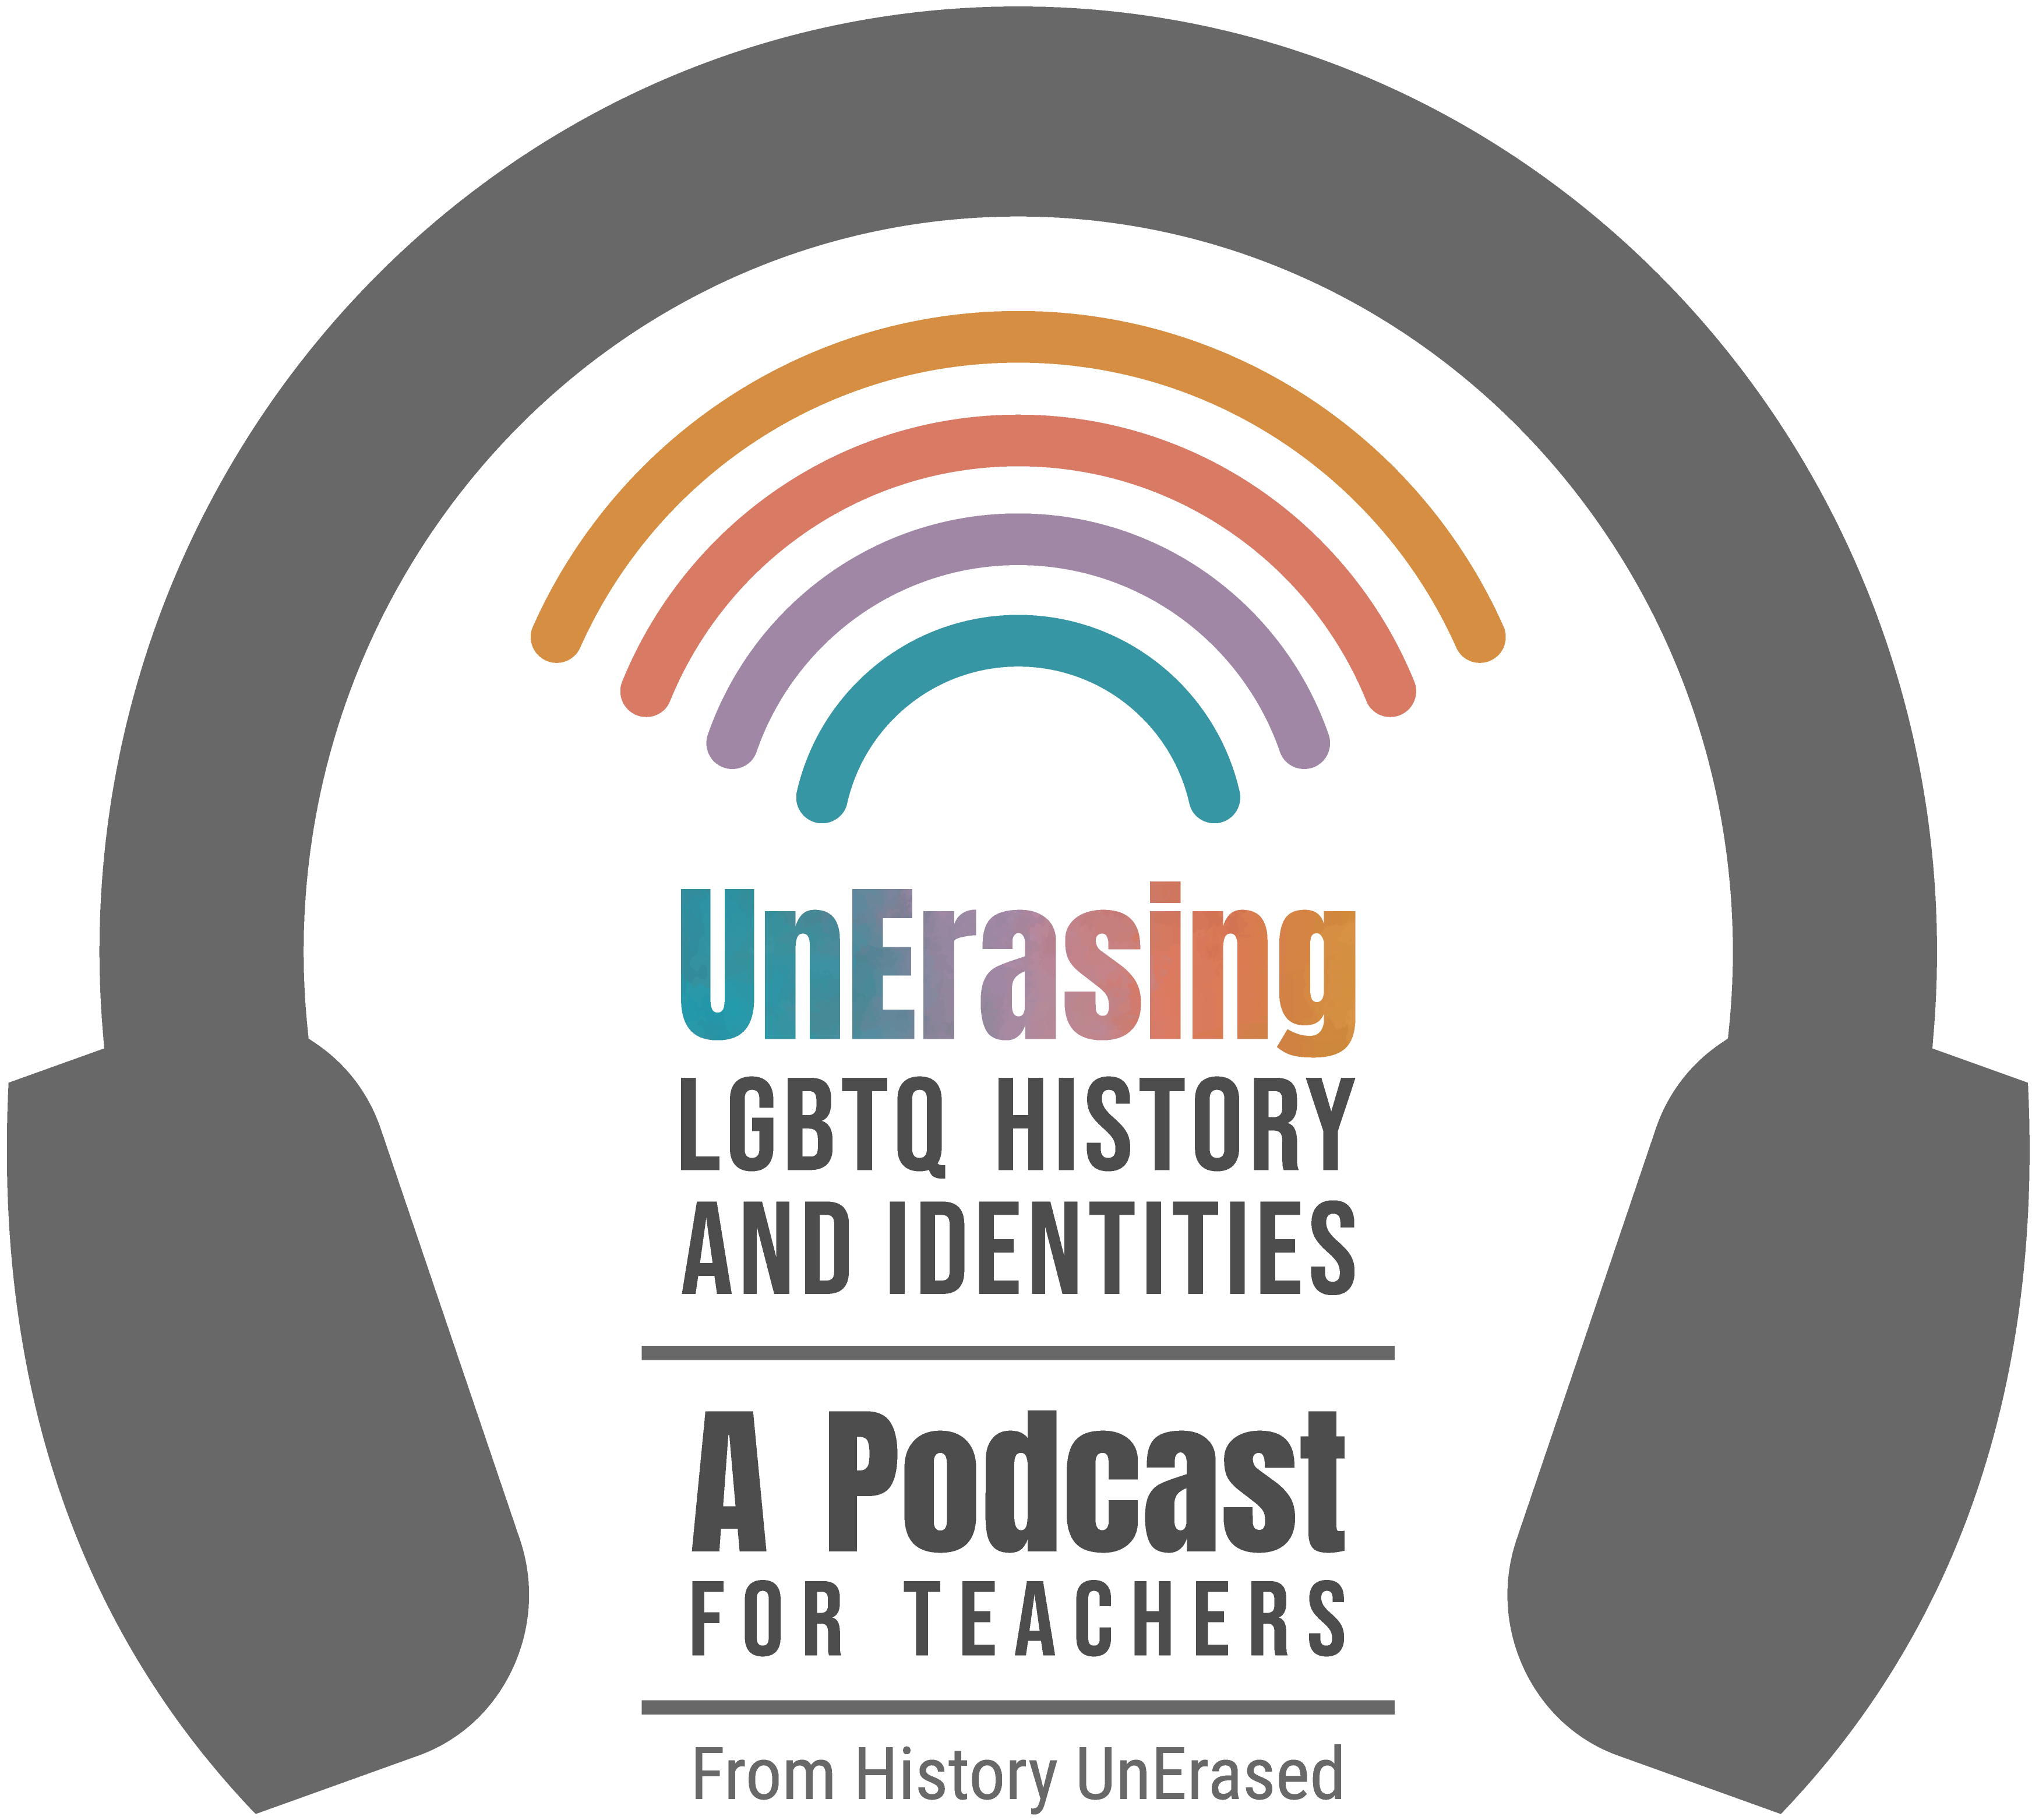 UnErasing LGBTQ history and identities podcast logo